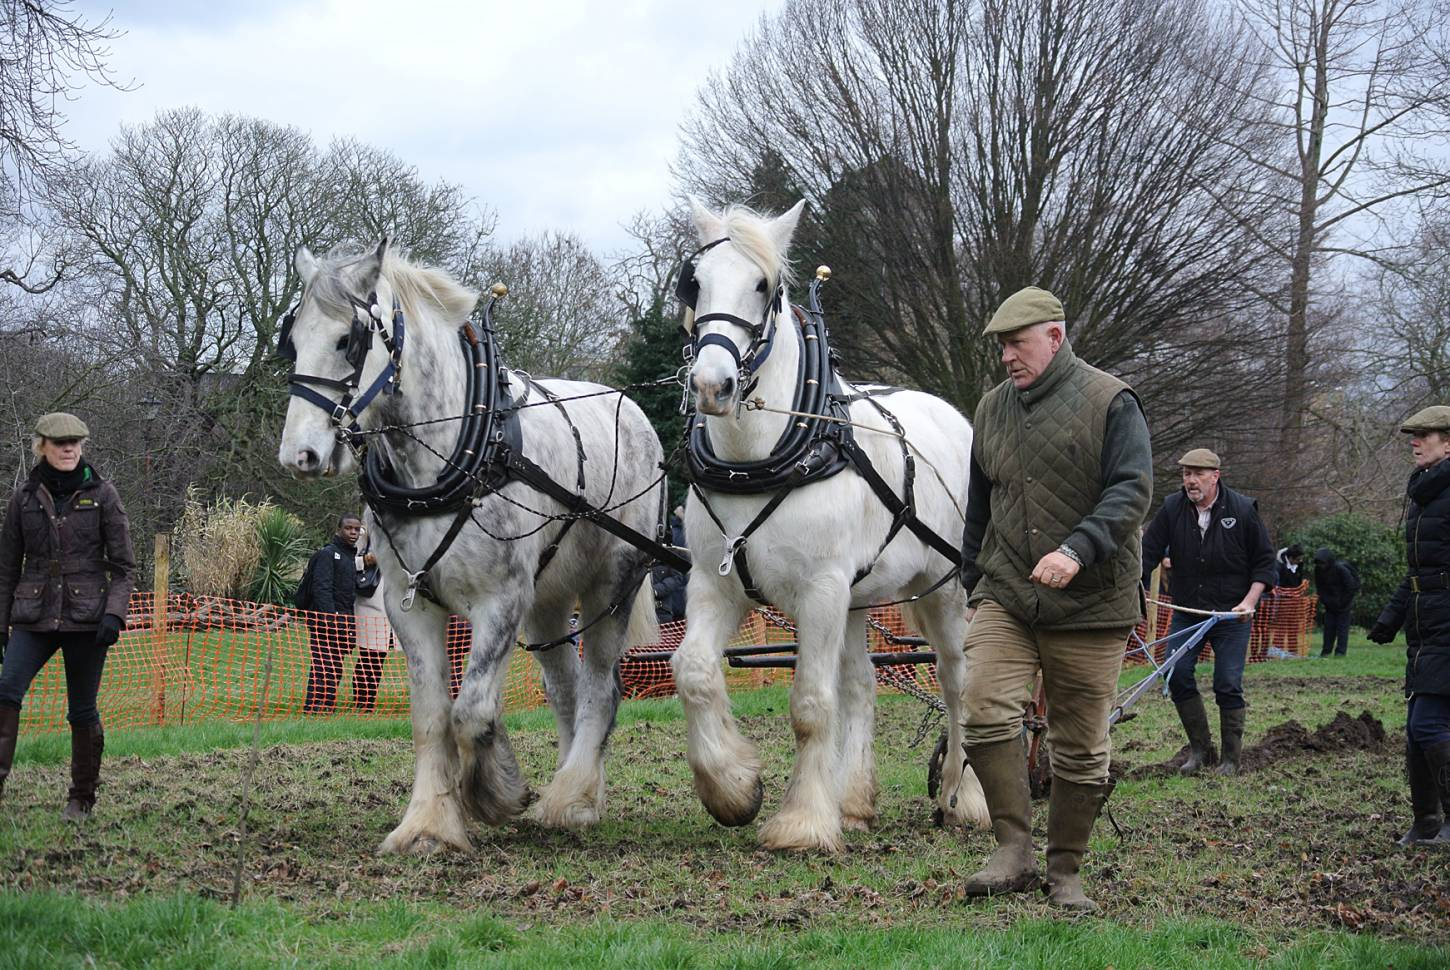 Shire horses, Heath and Nobby with ploughman Tom Nixon from <a href='http://www.operationcentaur.com/' target='_blank'>Operation Centaur</a> come to plough the <a href='https://twitter.com/ruskinparkse5?lang=en' target='_blank'>Ruskin Park</a> wheat patch. Image: Marie Cullen - 12:14pm&nbsp;9<sup>th</sup>&nbsp;Feb.&nbsp;'18